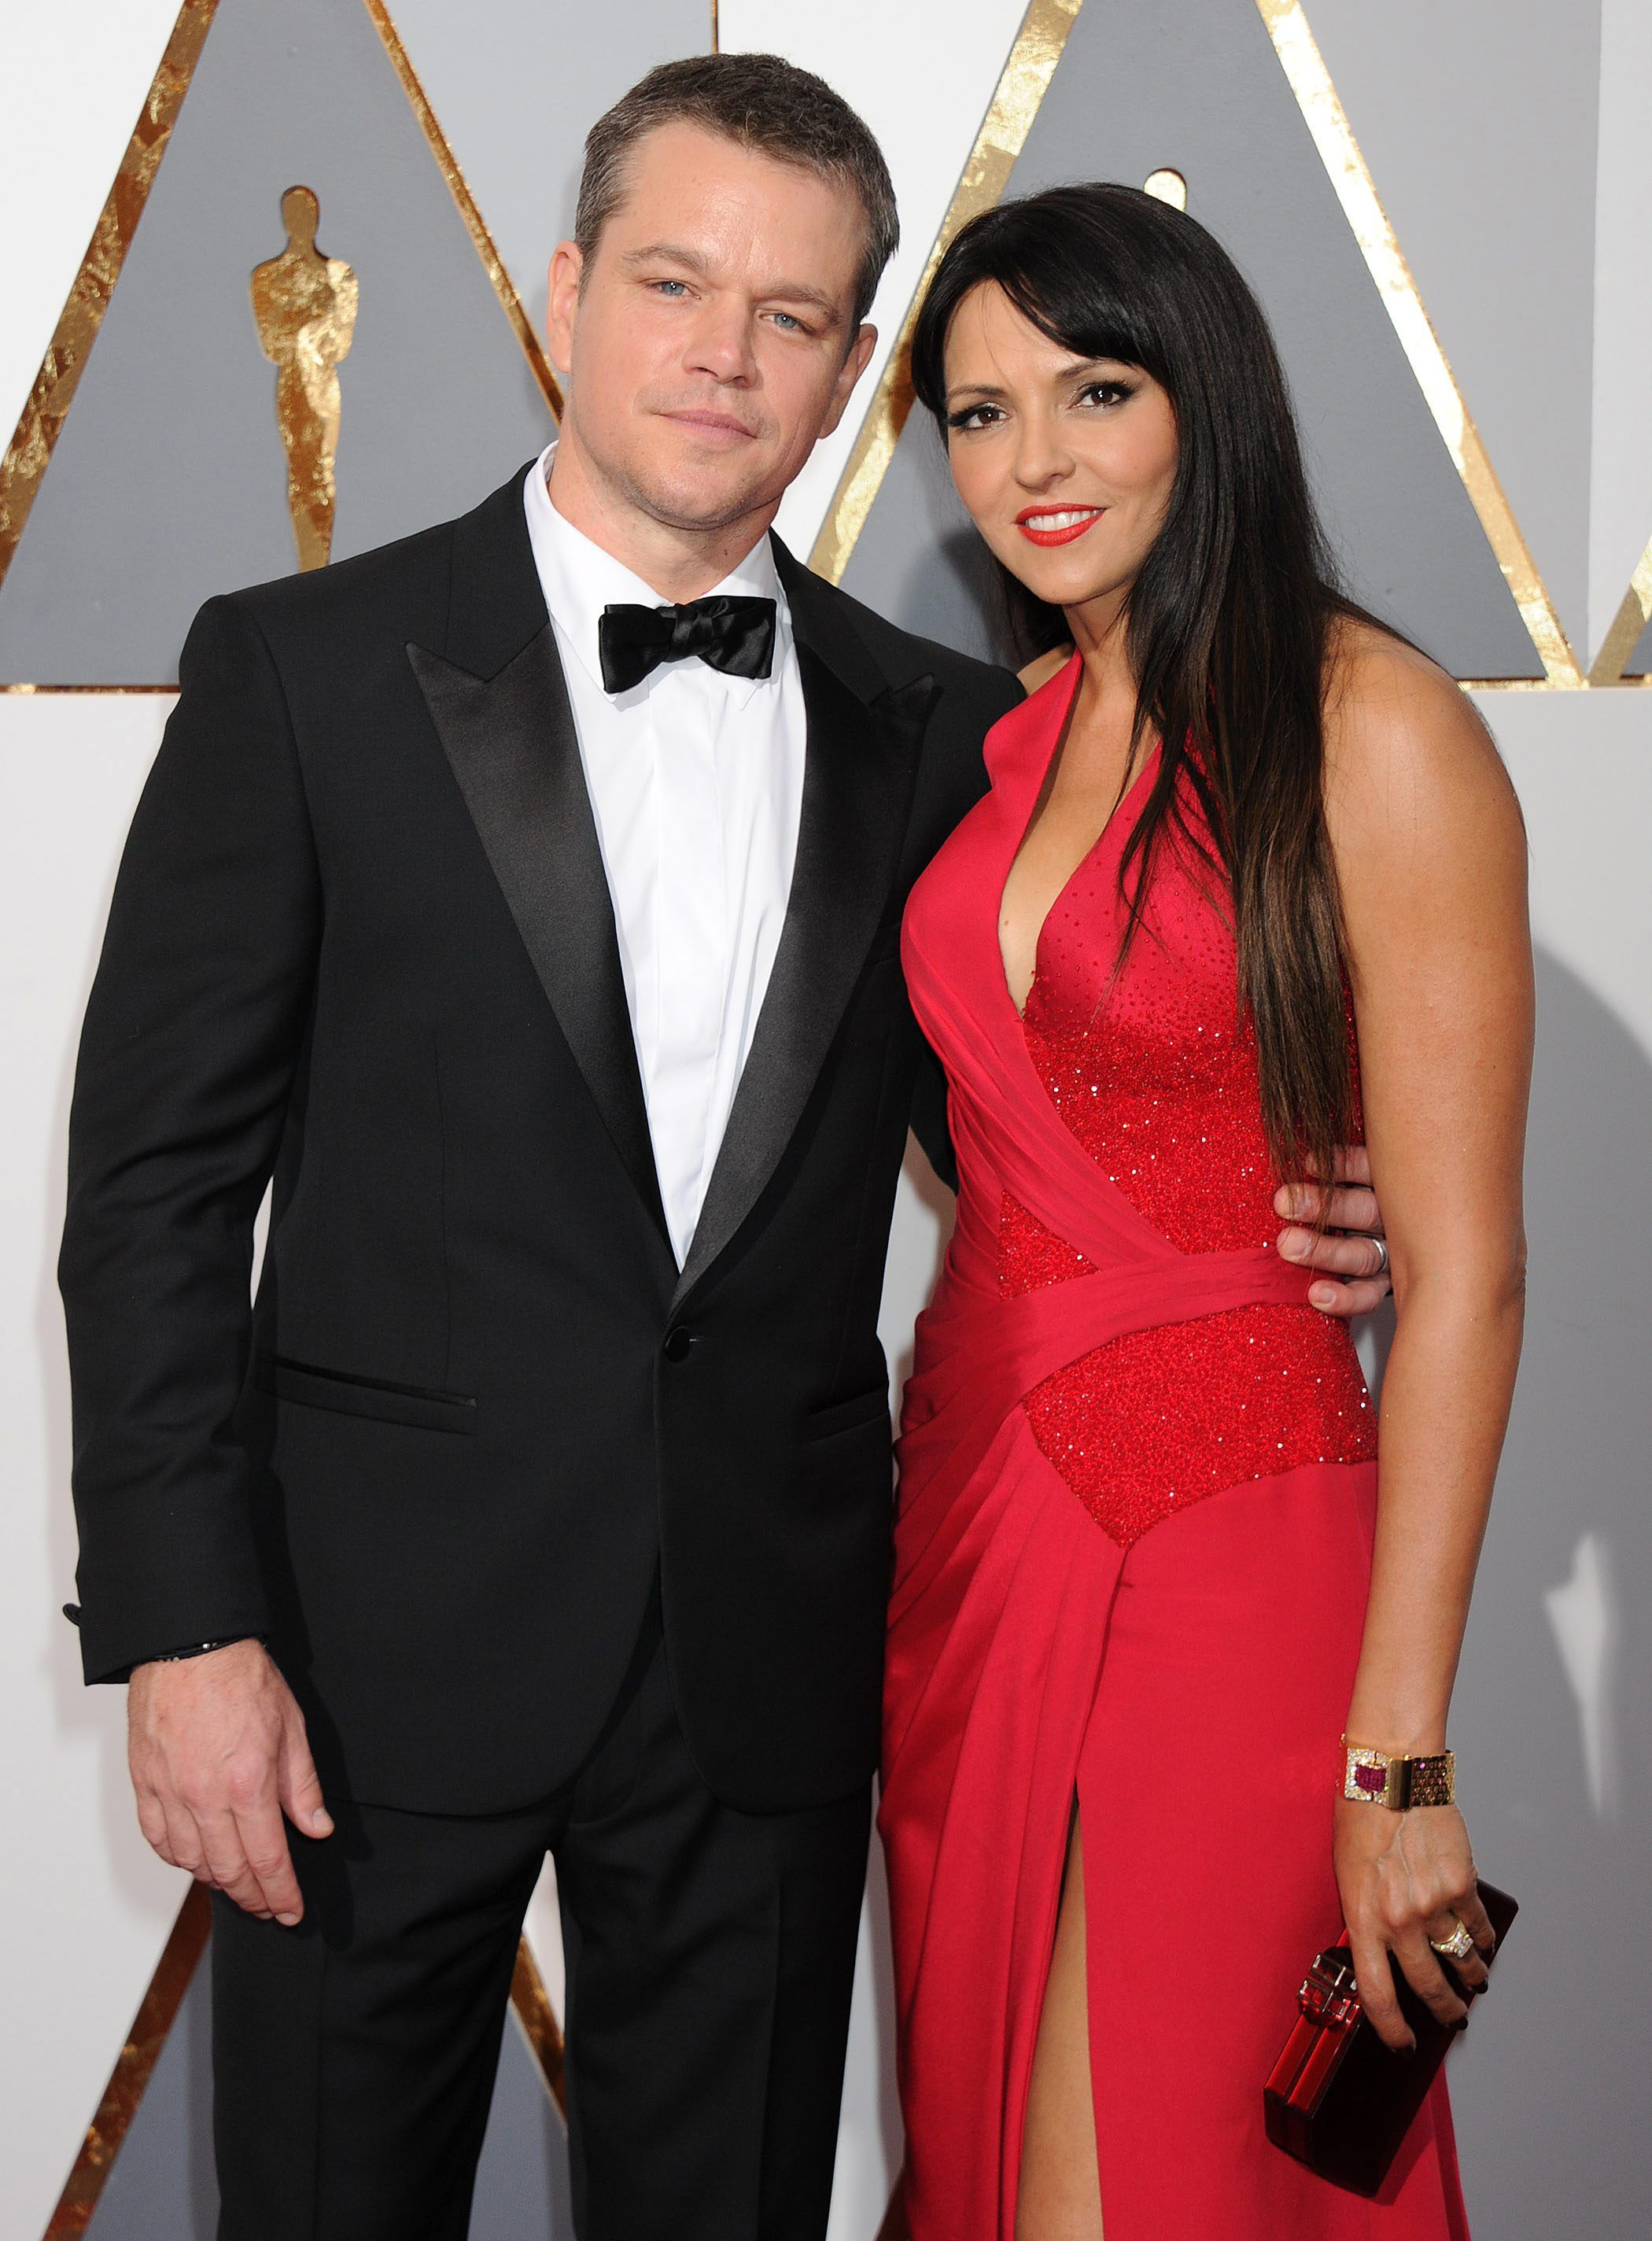 Things You Might Not Know About Matt Damon And Luciana Barroso's Relationship - Fame10